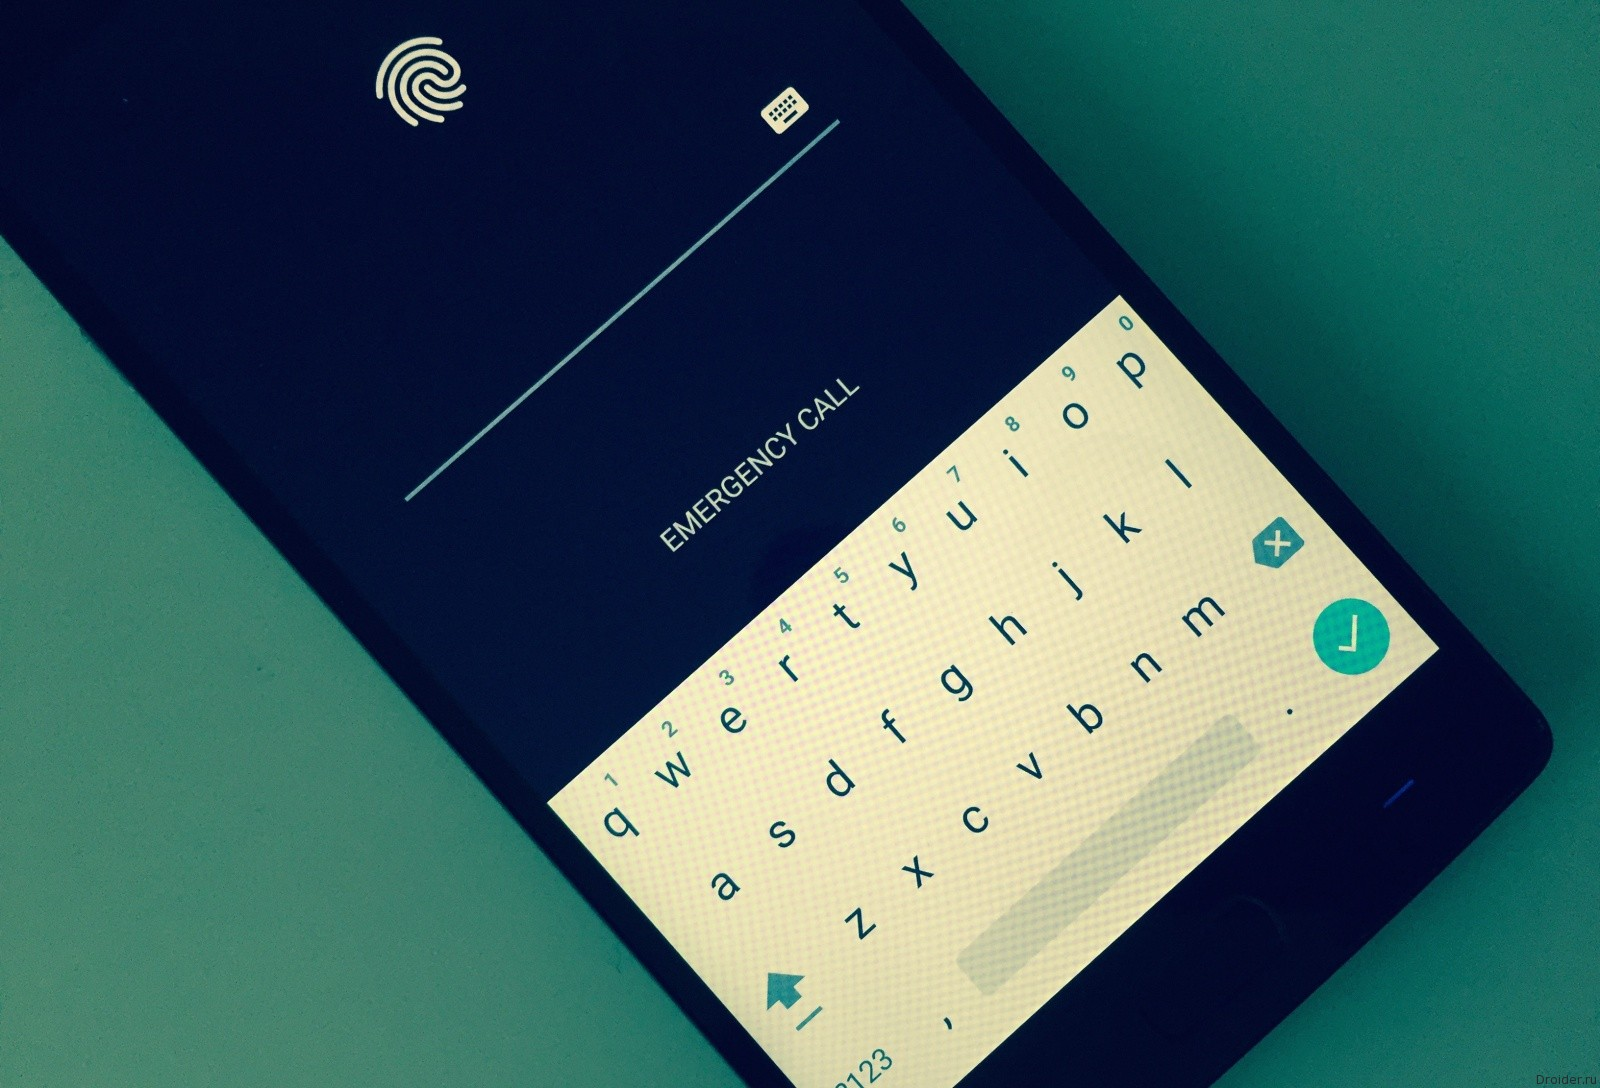 Android password